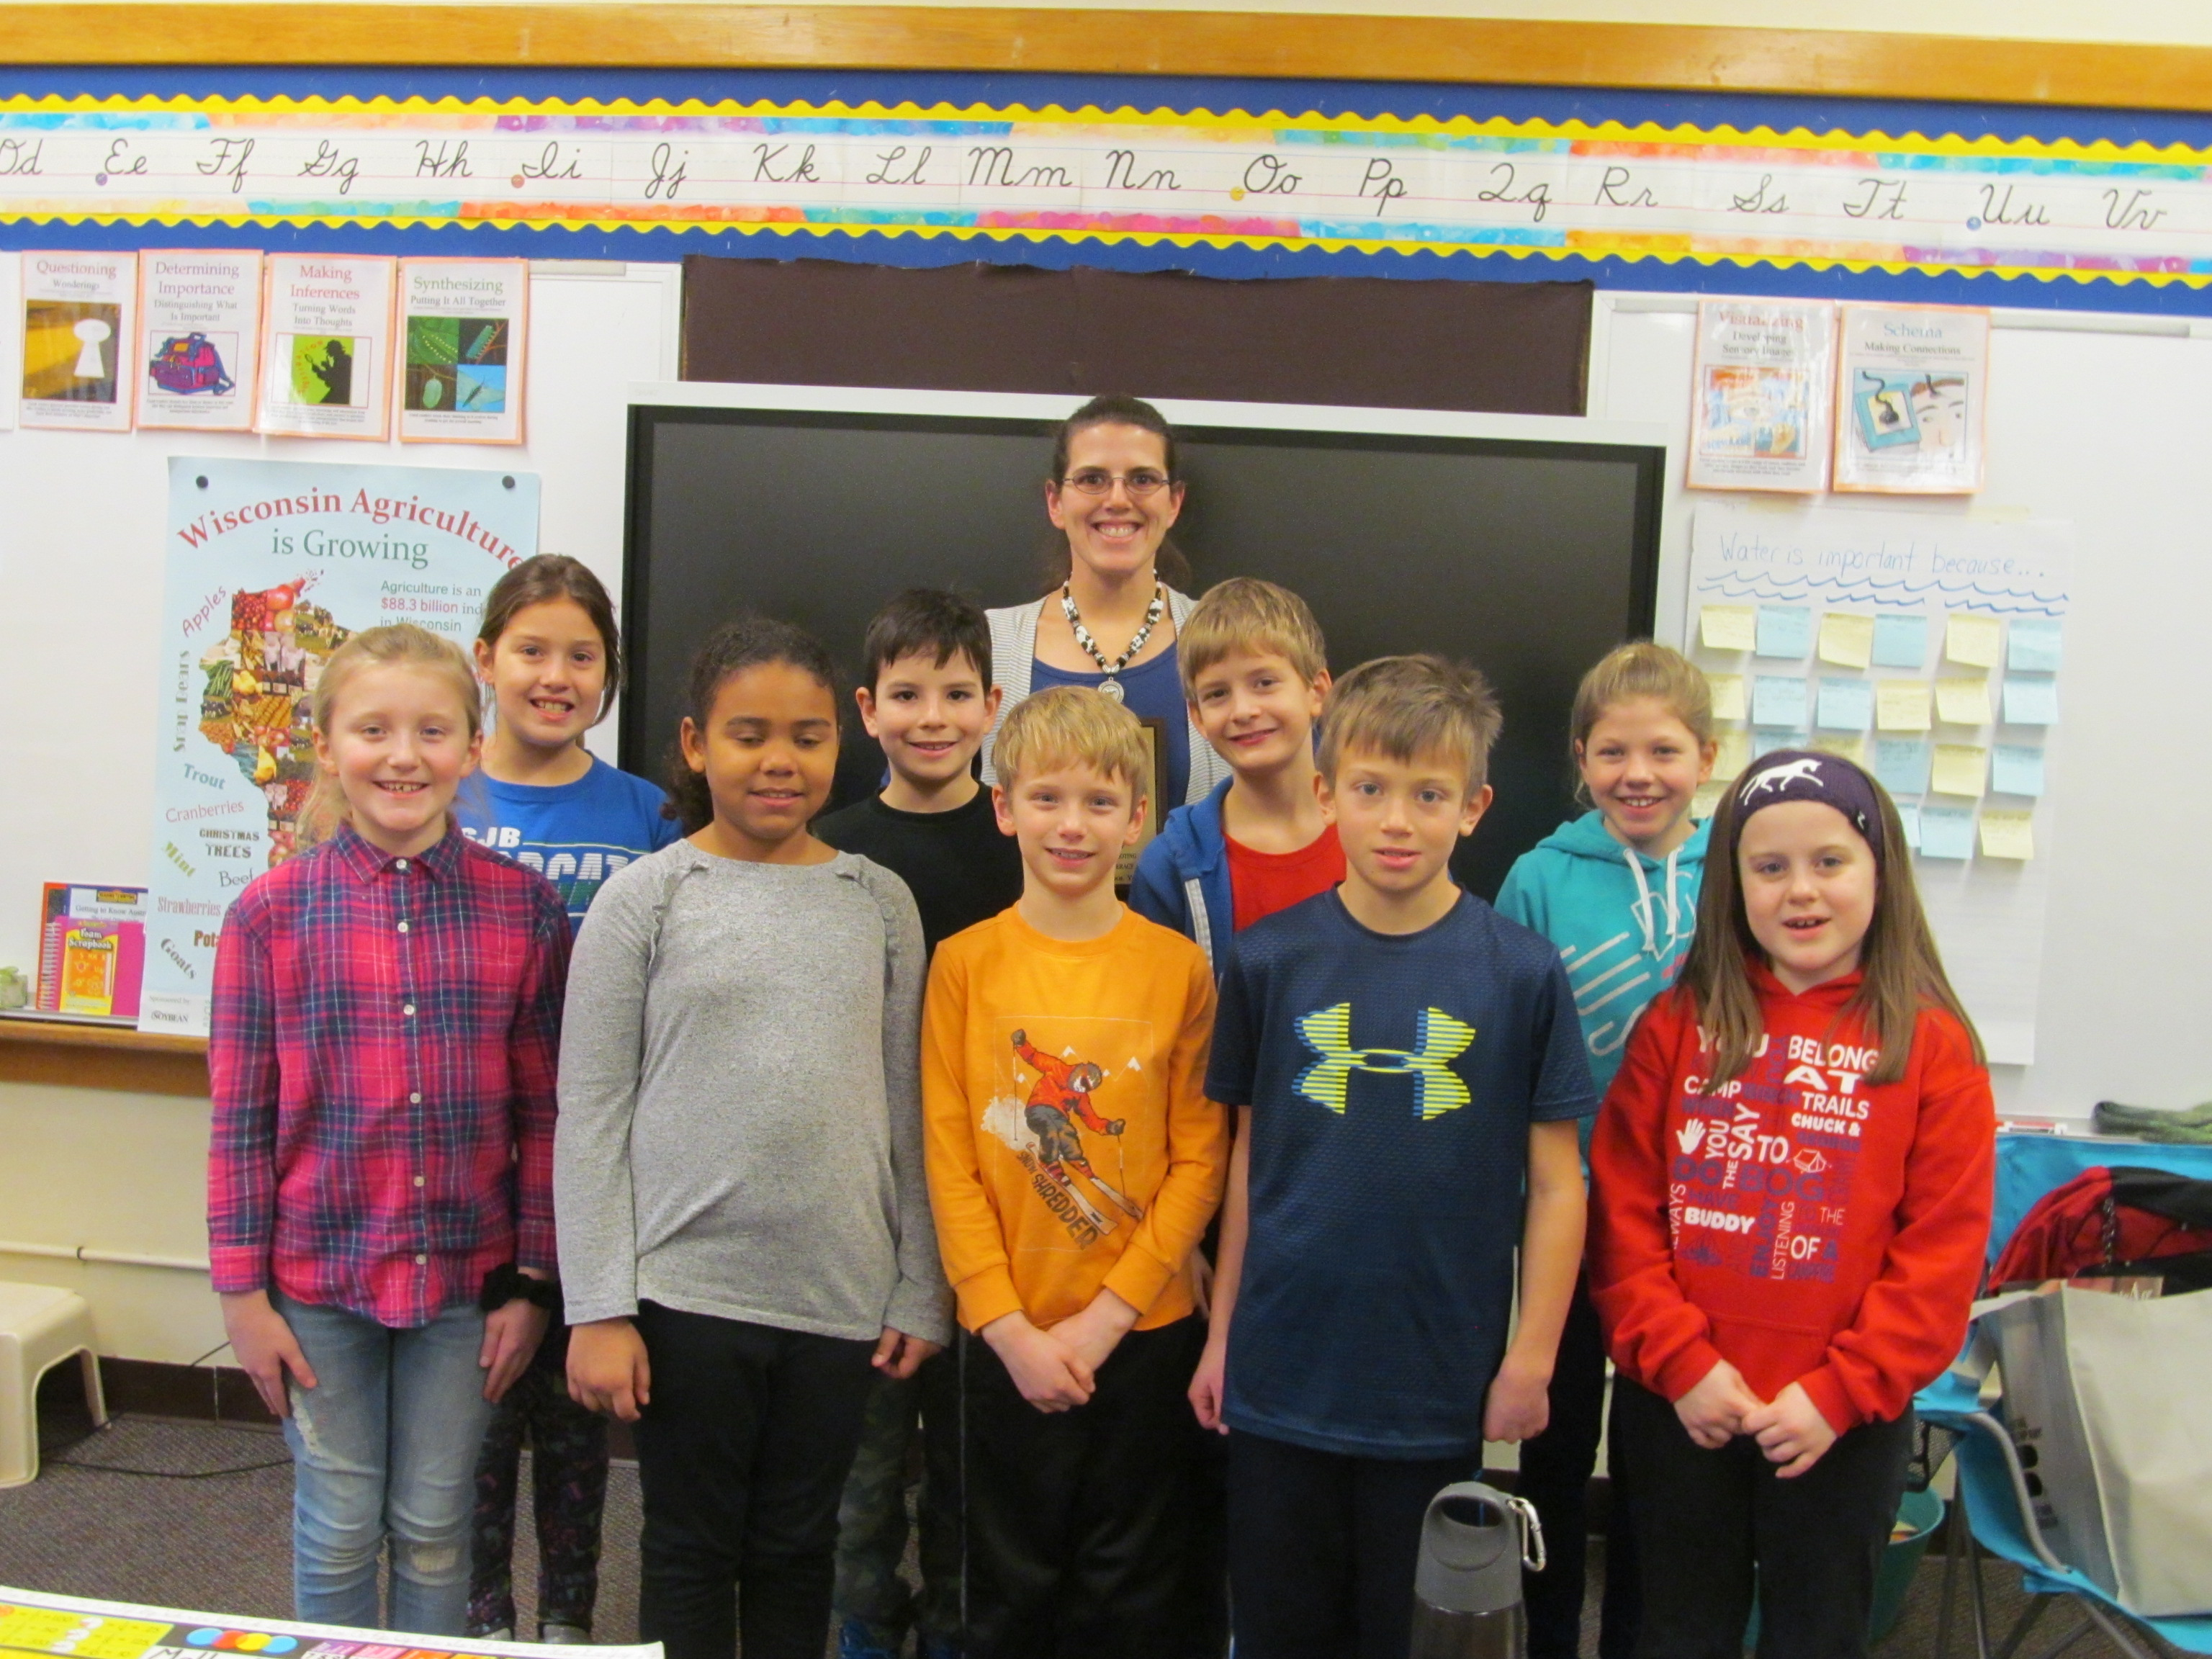 Mrs. VandenBush, 2019 Wisconsin Ag in the Classroom Outstanding Teacher, pictured with her students.